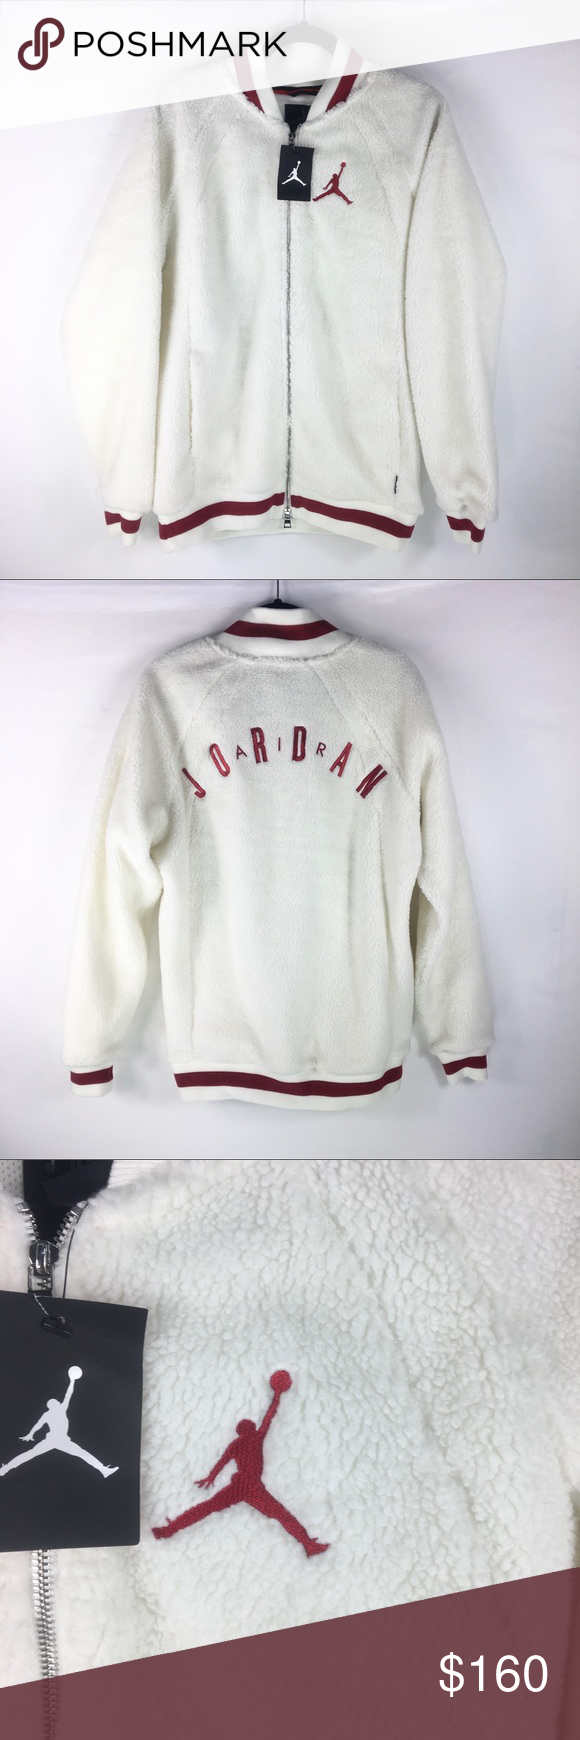 new concept d172e 28fef Nike Air Jordan Shearling AJ1 Fleece Jacket Nike Air Jordan Shearling AJ1  Fleece Jacket Size Medium AH9748-133 New Actual Measurements  are aimed to  help ...